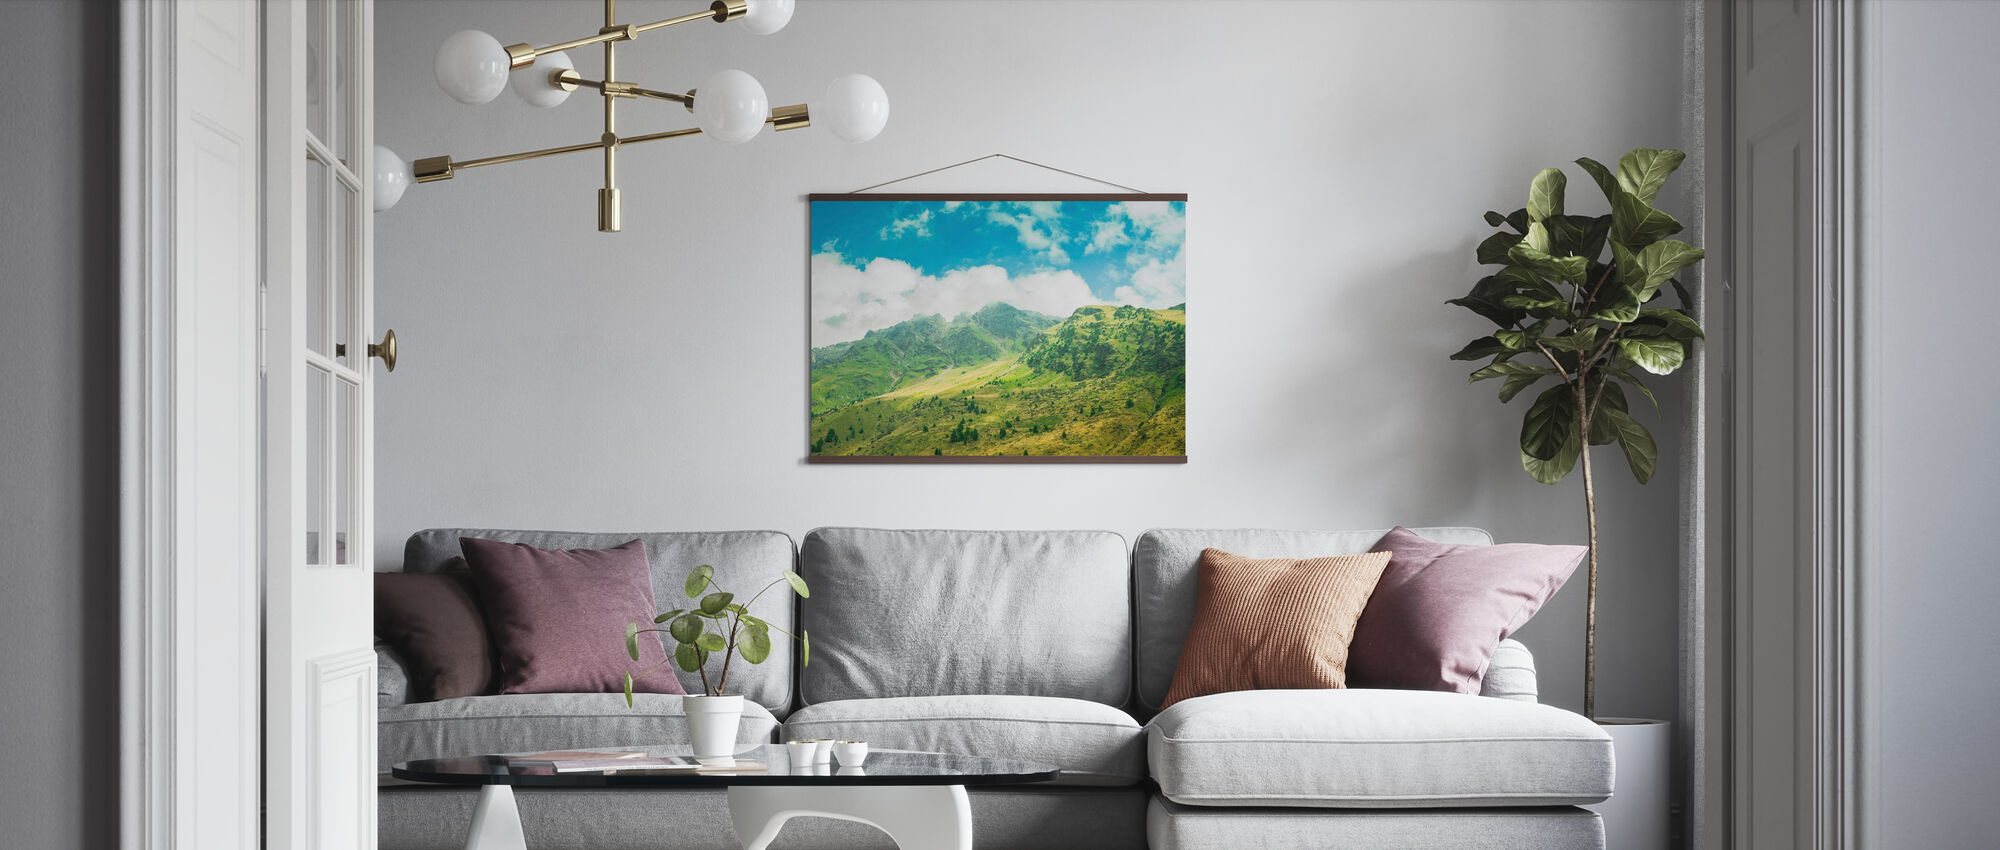 Chasing Space - Poster - Living Room